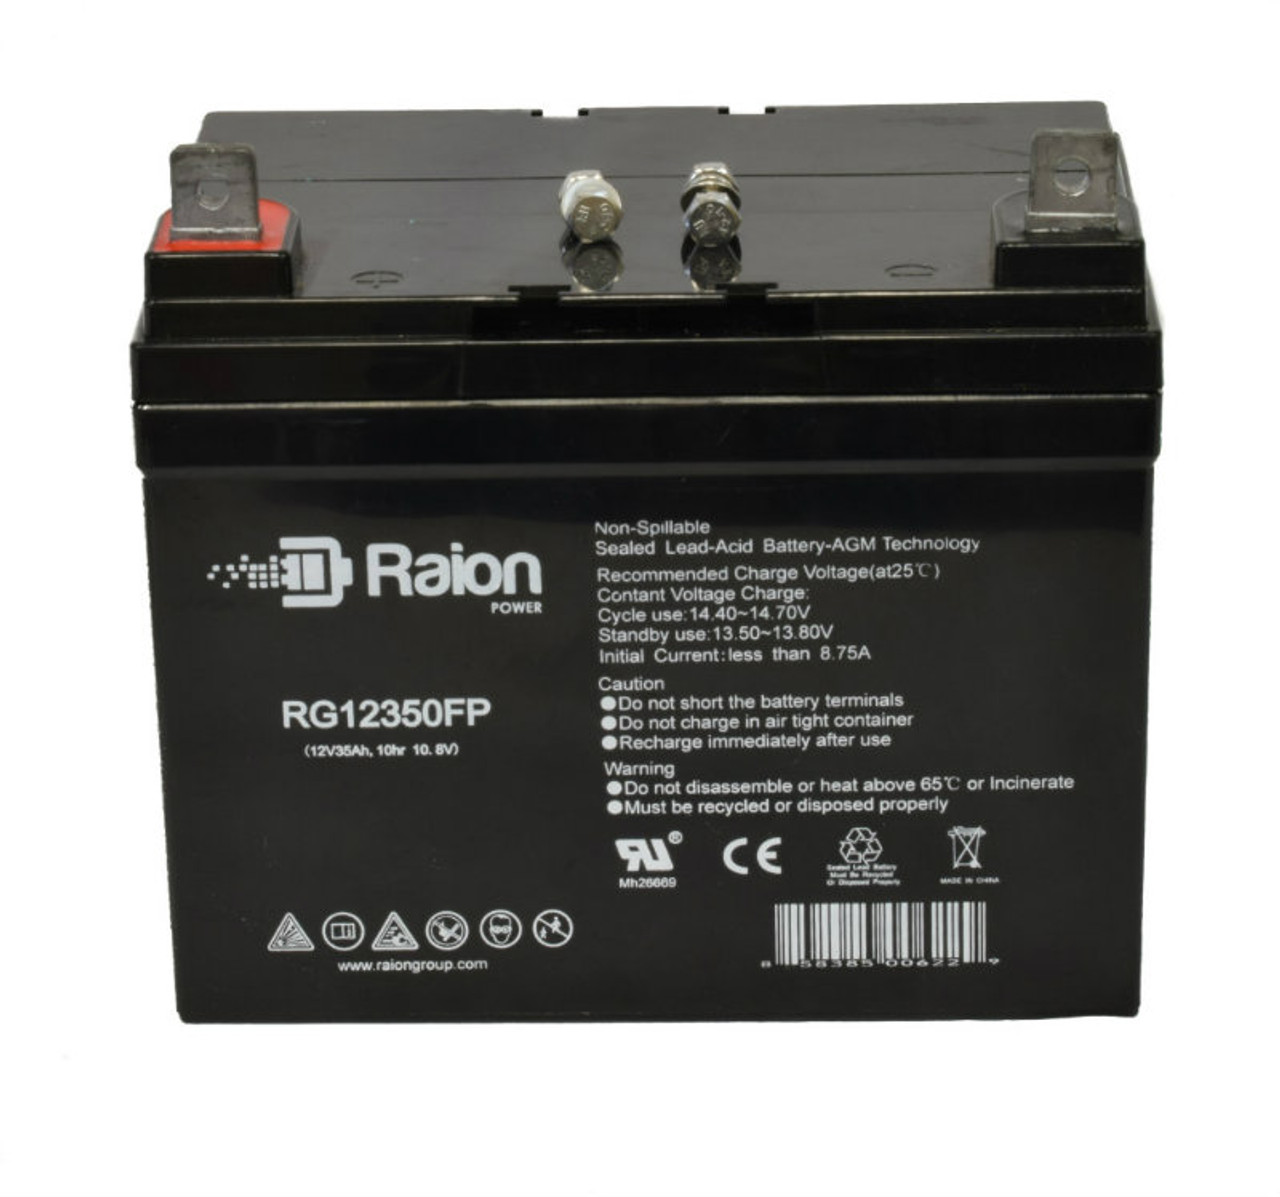 RG12350FP Sealed Lead Acid Battery Pack For Electric Mobility Rascal 250PC Mobility Scooter